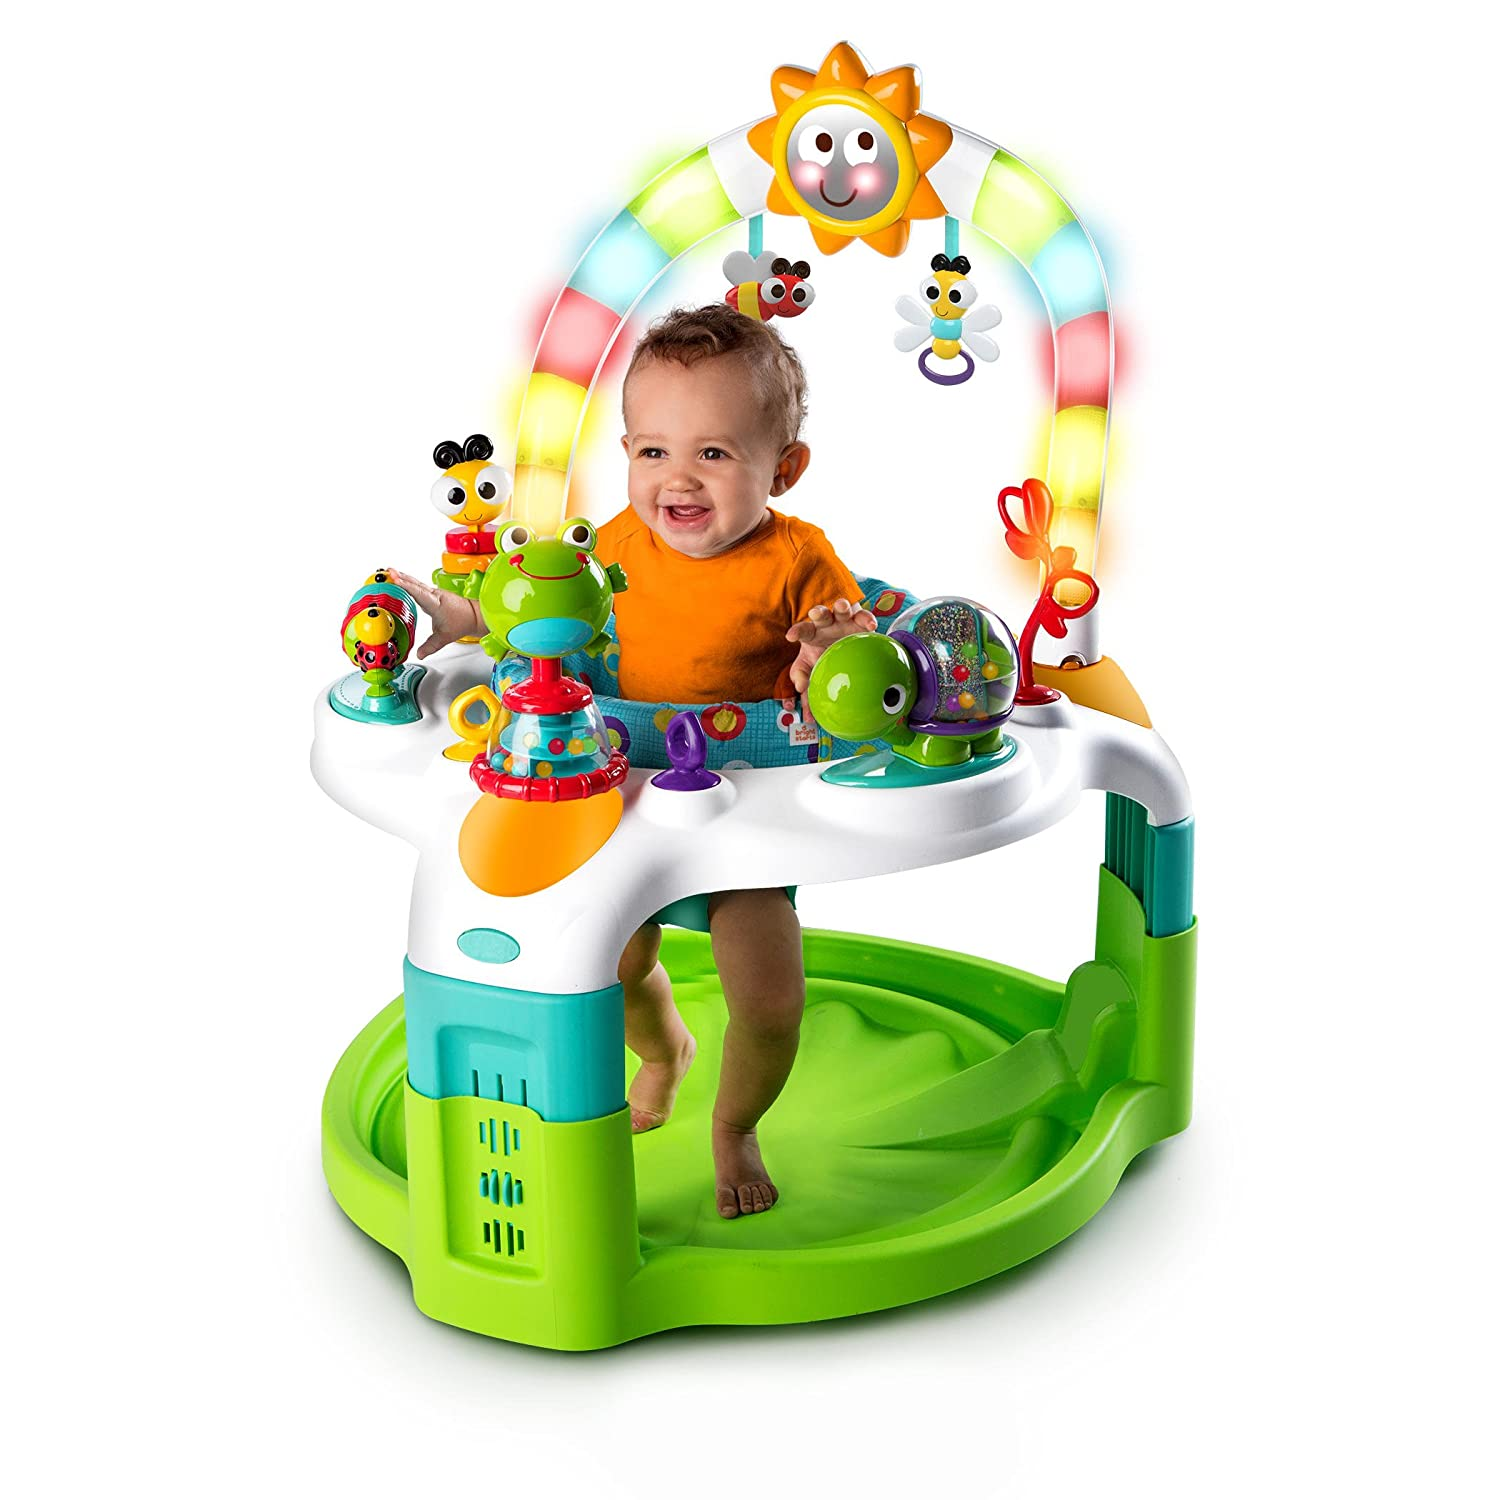 Bright Starts 2 in 1 Laugh & Lights Activity Gym and Saucer1